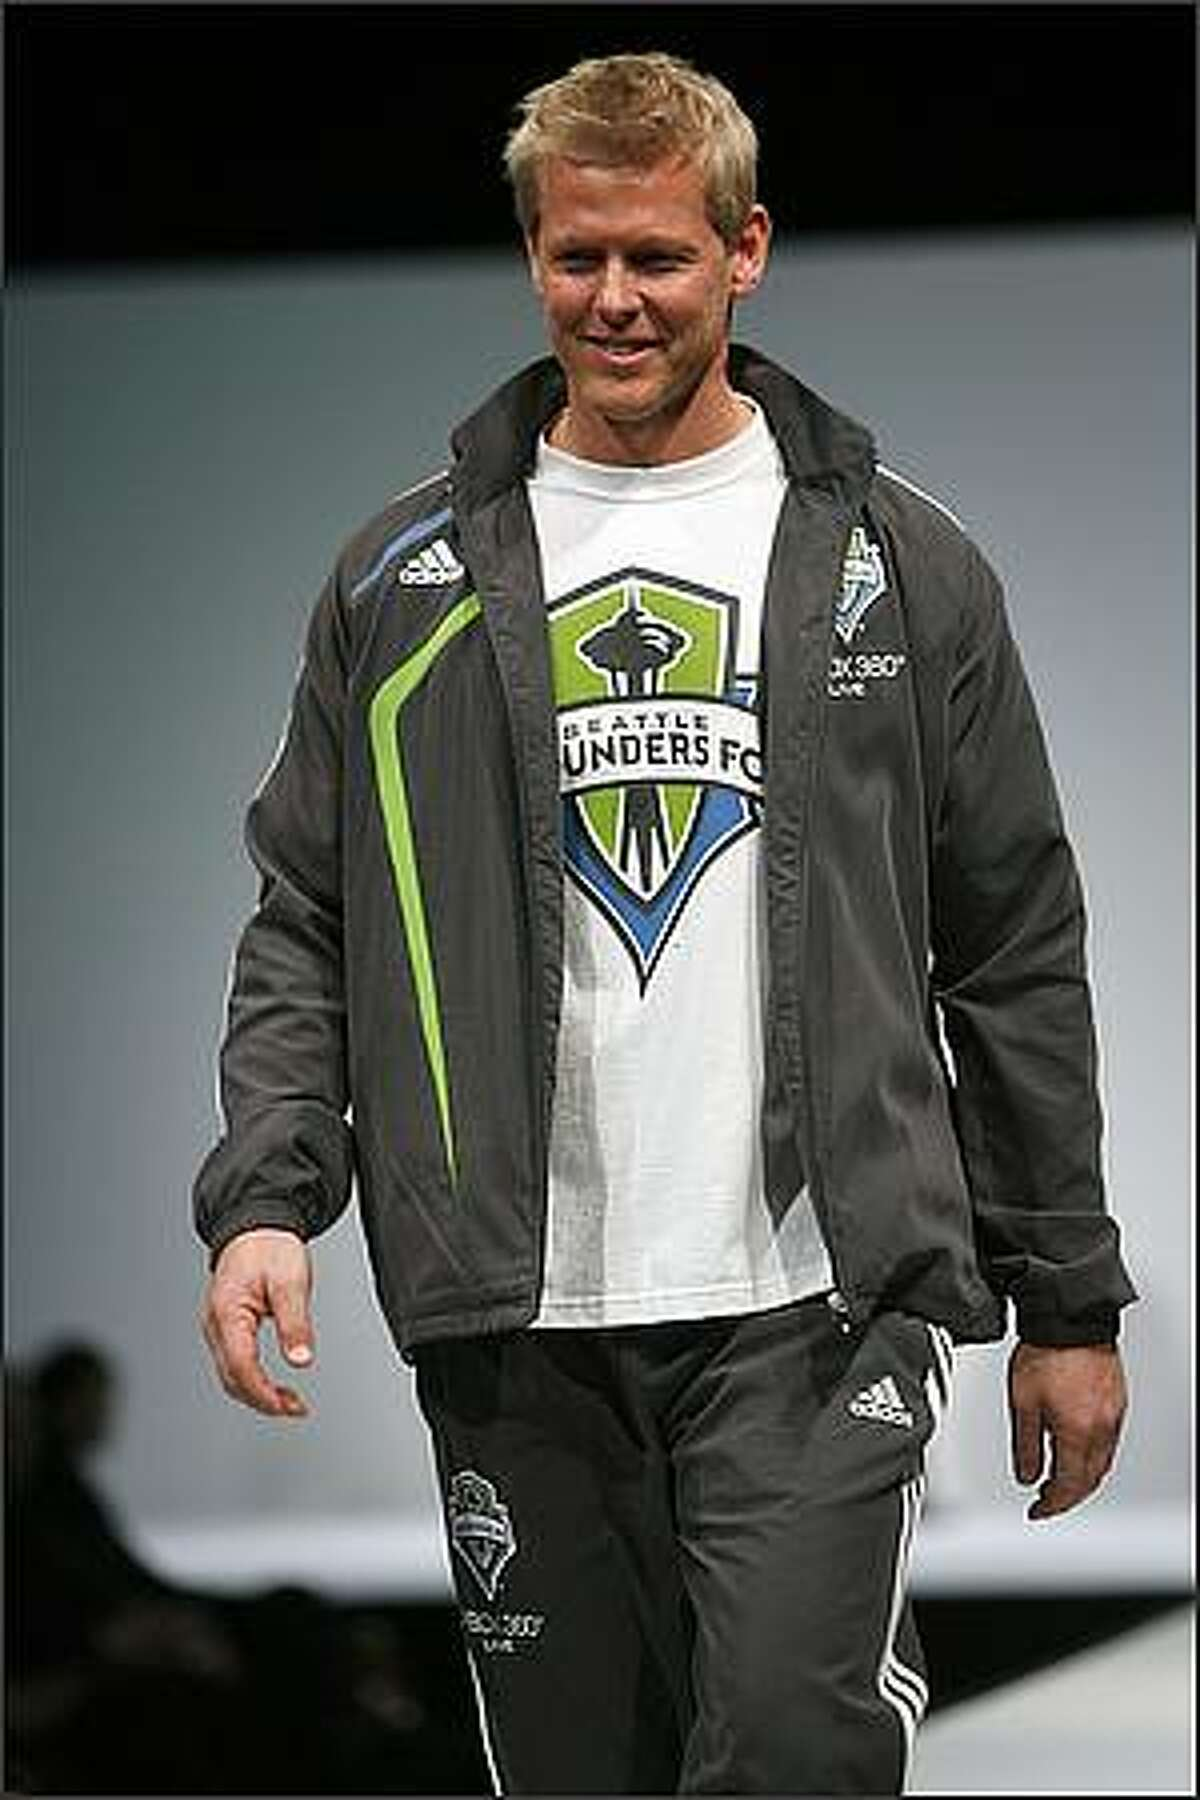 Model Dave wears the Seattle Sounders FC presentation suit during a runway fashion show featuring Sounders clothing at the WaMu Theater in Seattle.